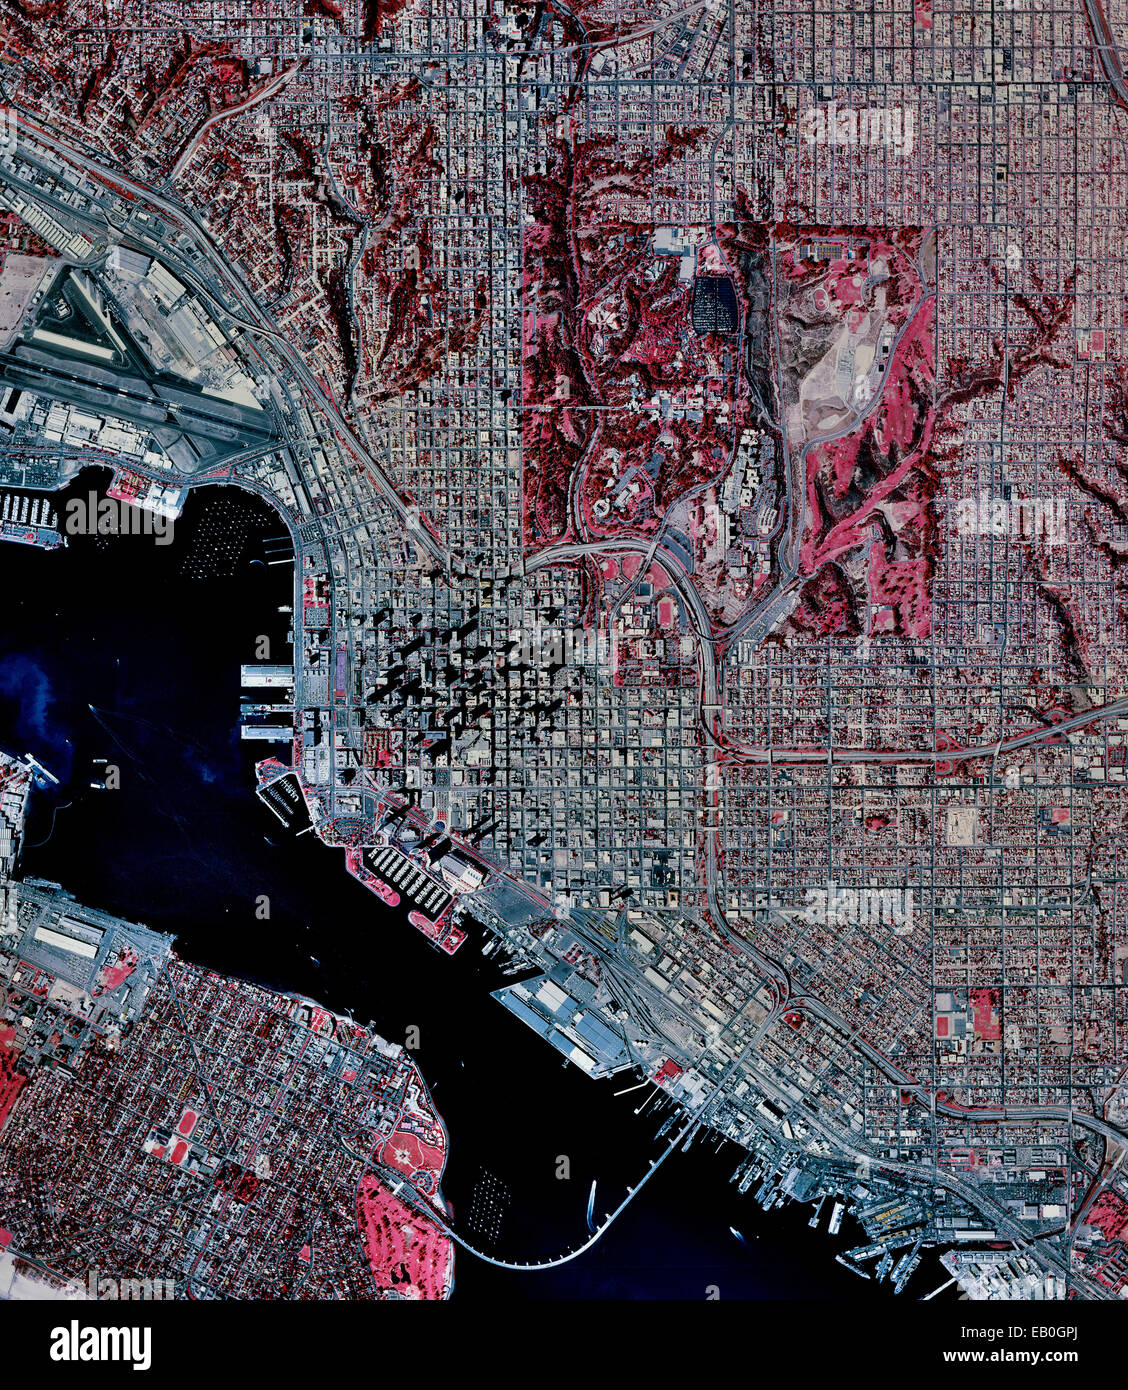 historical infrared aerial photograph of San Diego, California, 1996 - Stock Image